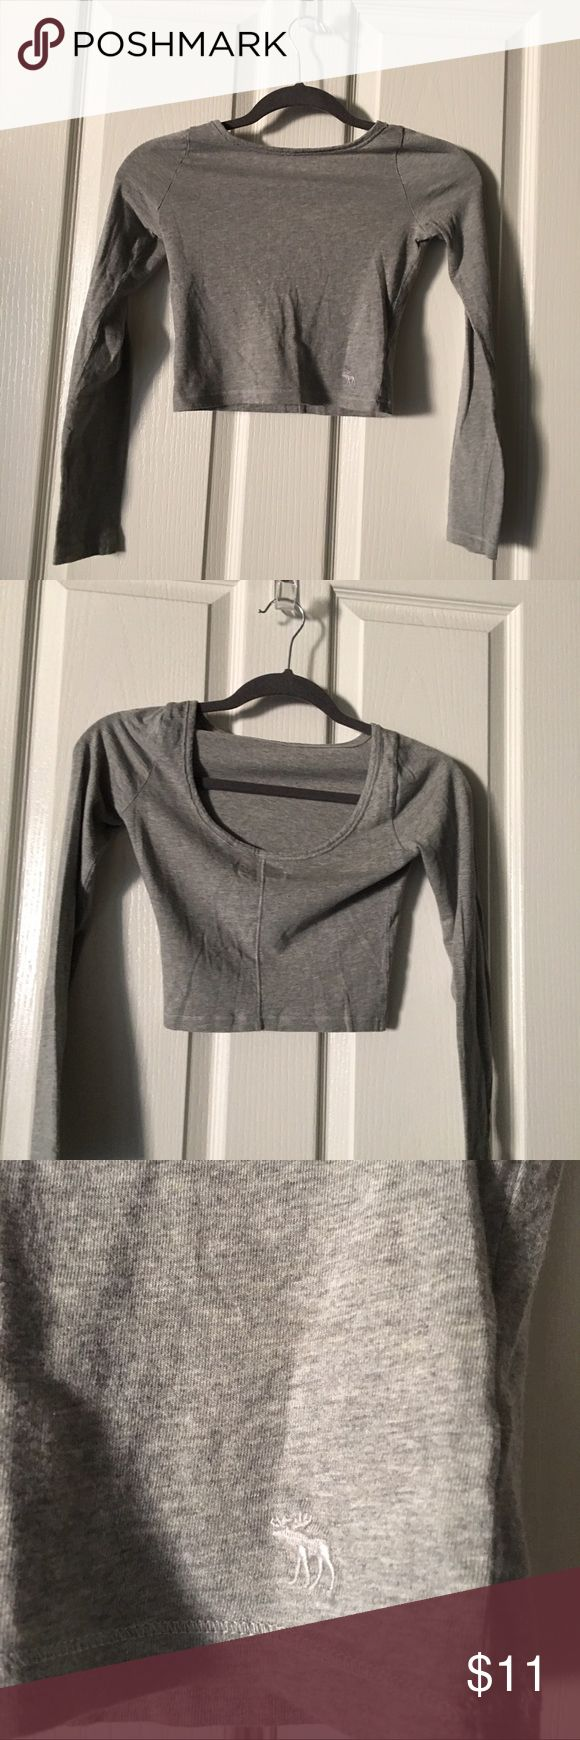 NWOT Girls Long Sleeve Crop Top Back side is scooped lower than front side, very light comfortable material. abercrombie kids Shirts & Tops